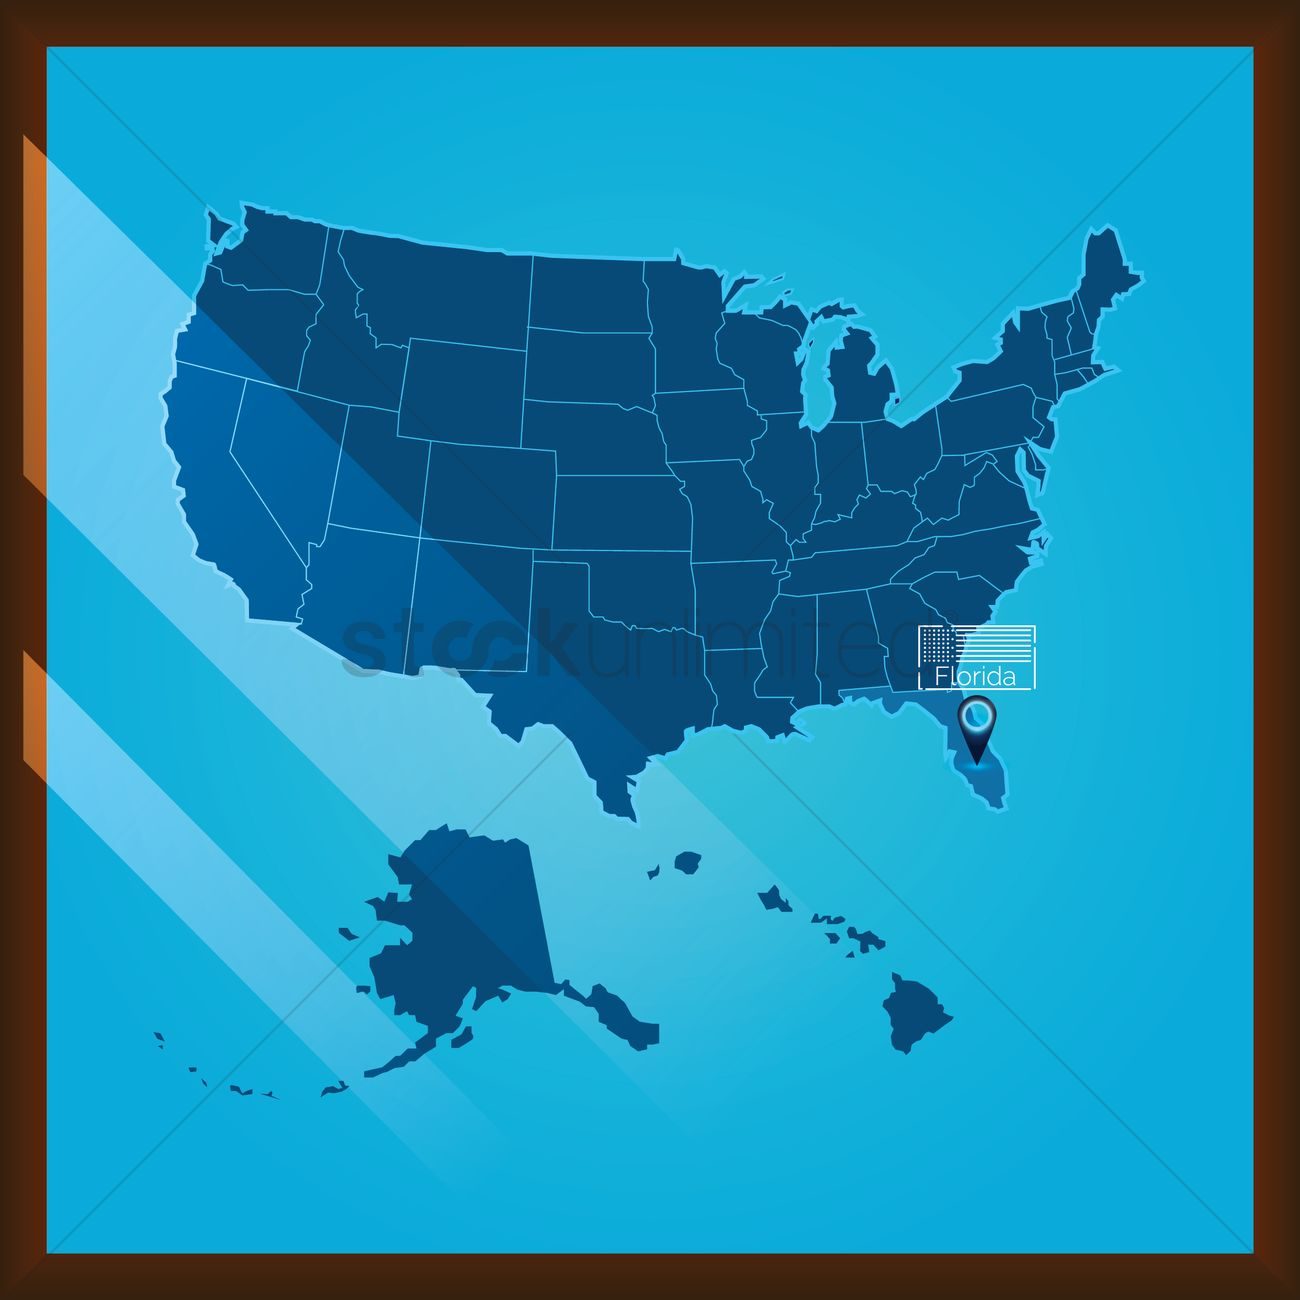 Florida On Us Map.Navigation Pointer Indicating Florida State On Us Map Vector Image